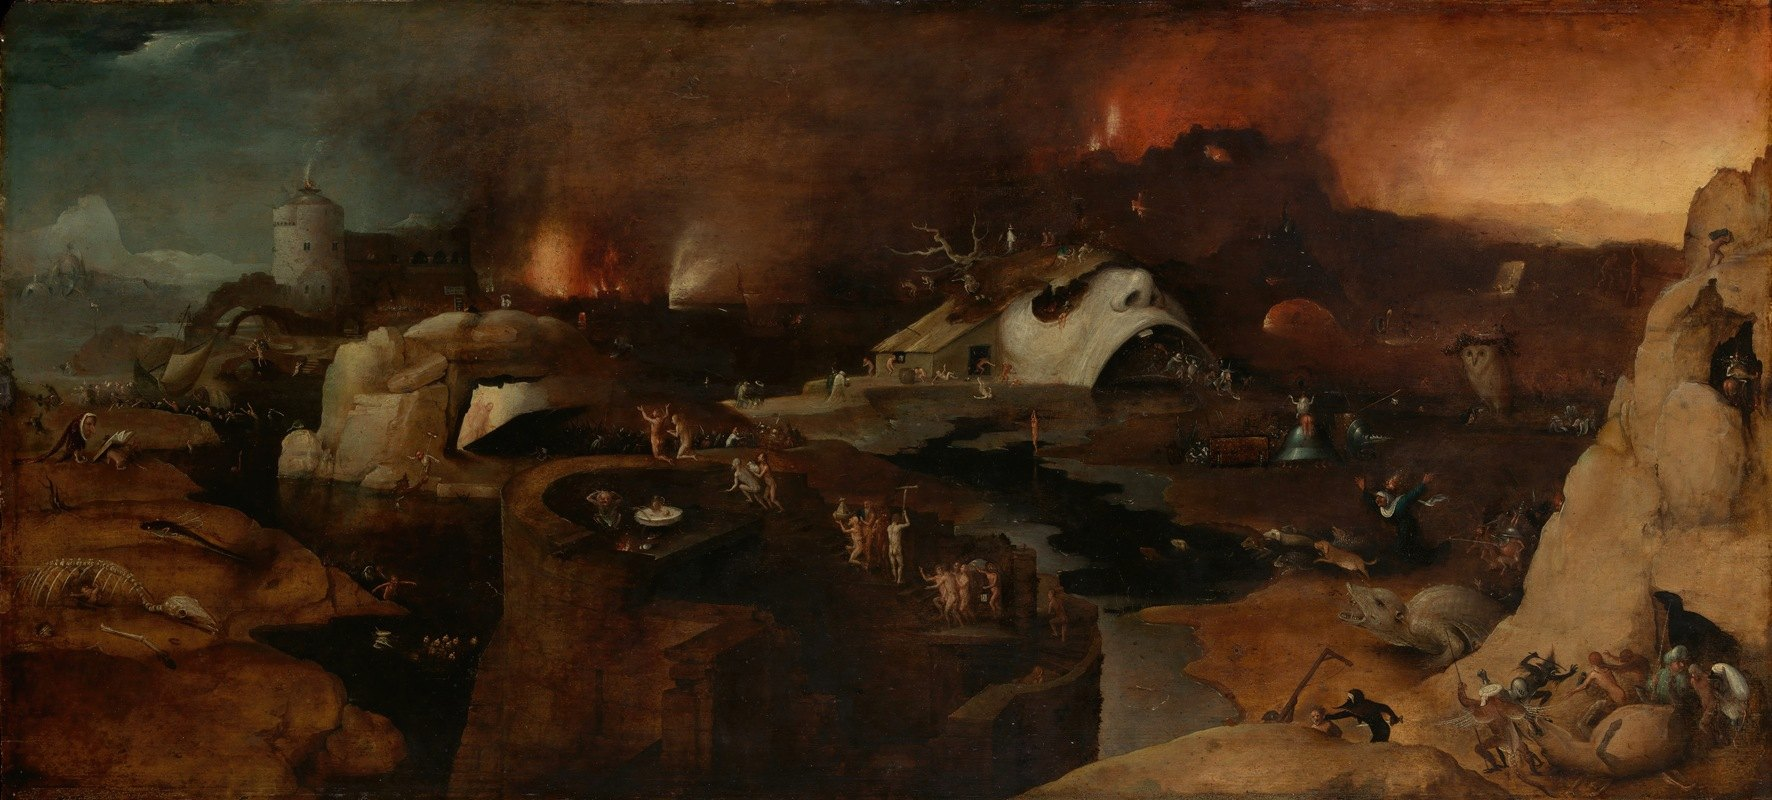 Follower of Hieronymus Bosch - Christ's Descent into Hell